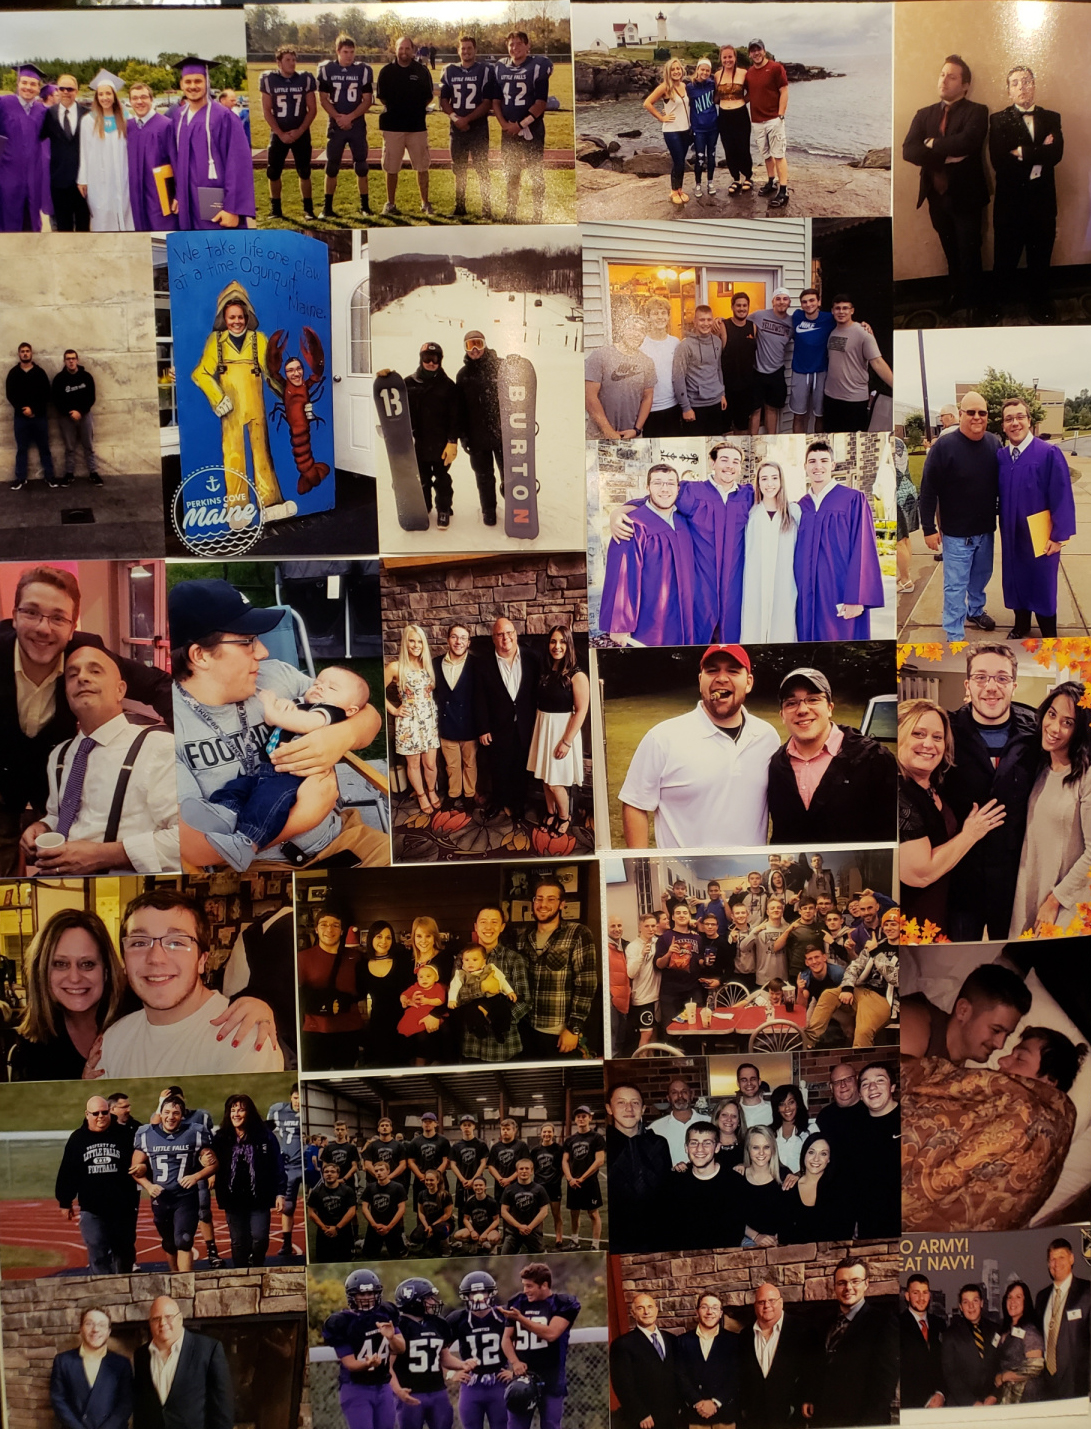 A collage of photos of Connor Gage posted Feb. 10 on his Caring Bridge site by family friend Andrew Topham. Gage died Feb. 2 in a North Winooski Avenue parking lot after exposure to sub-zero temperatures following visits to two off-campus fraternities.